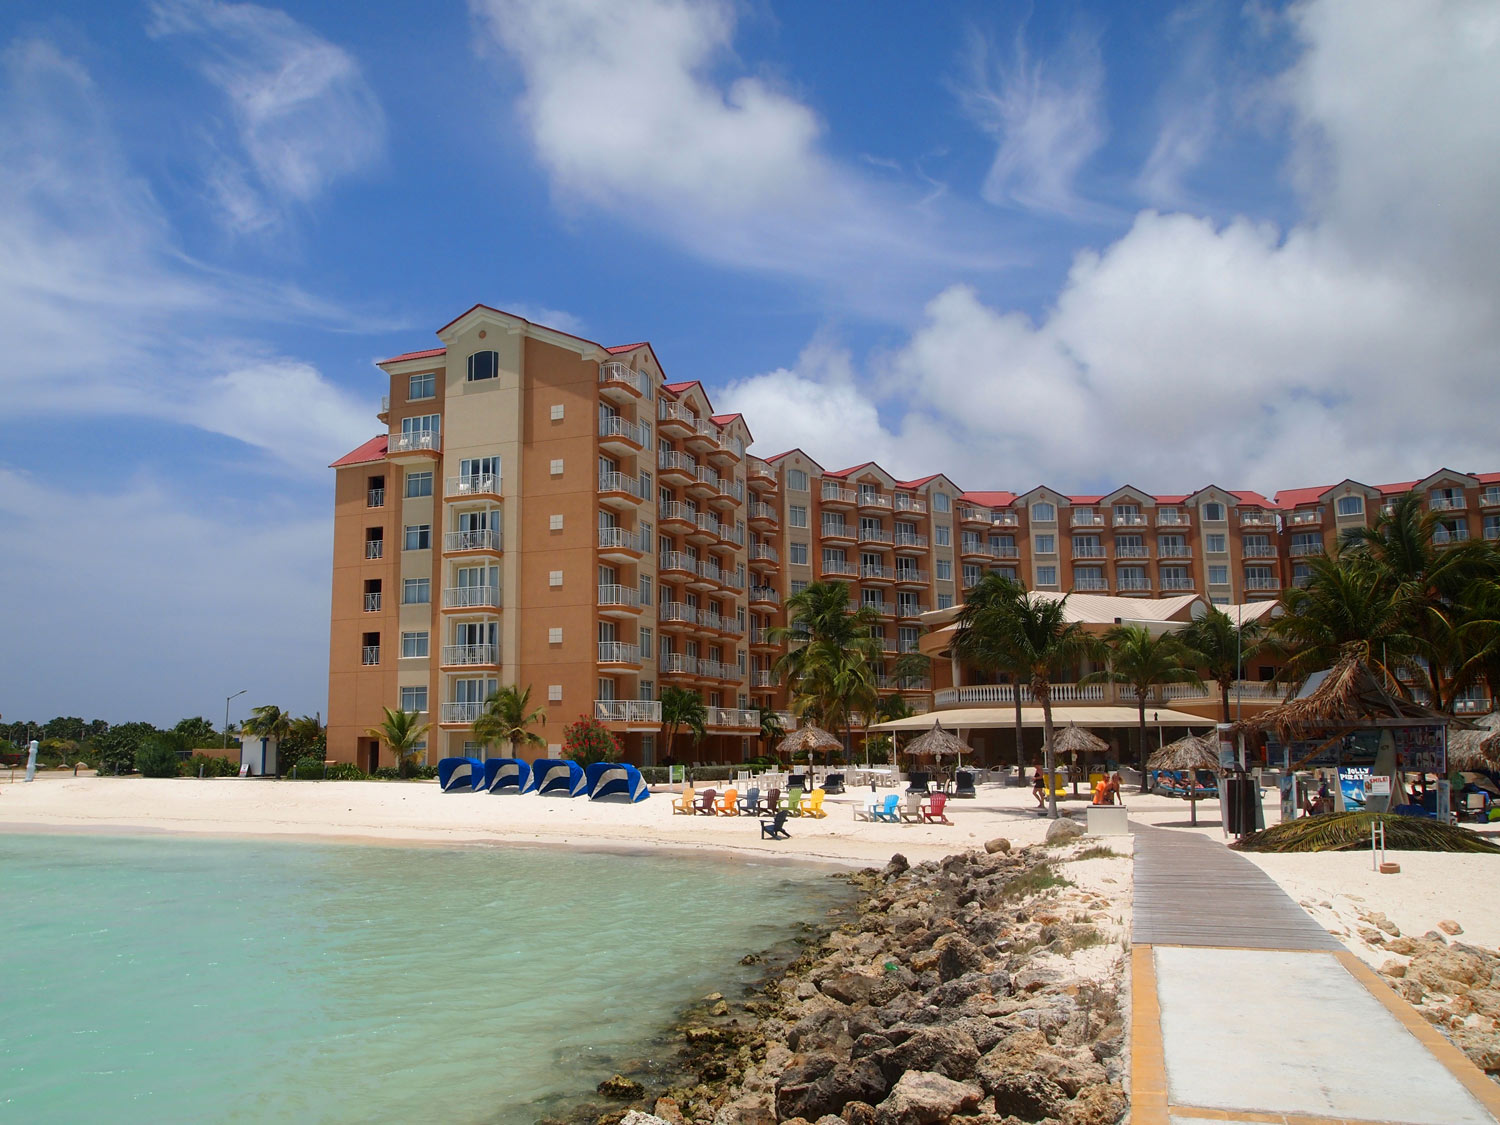 Divi-Aruba-Phoenix-Beach-Resort.jpg